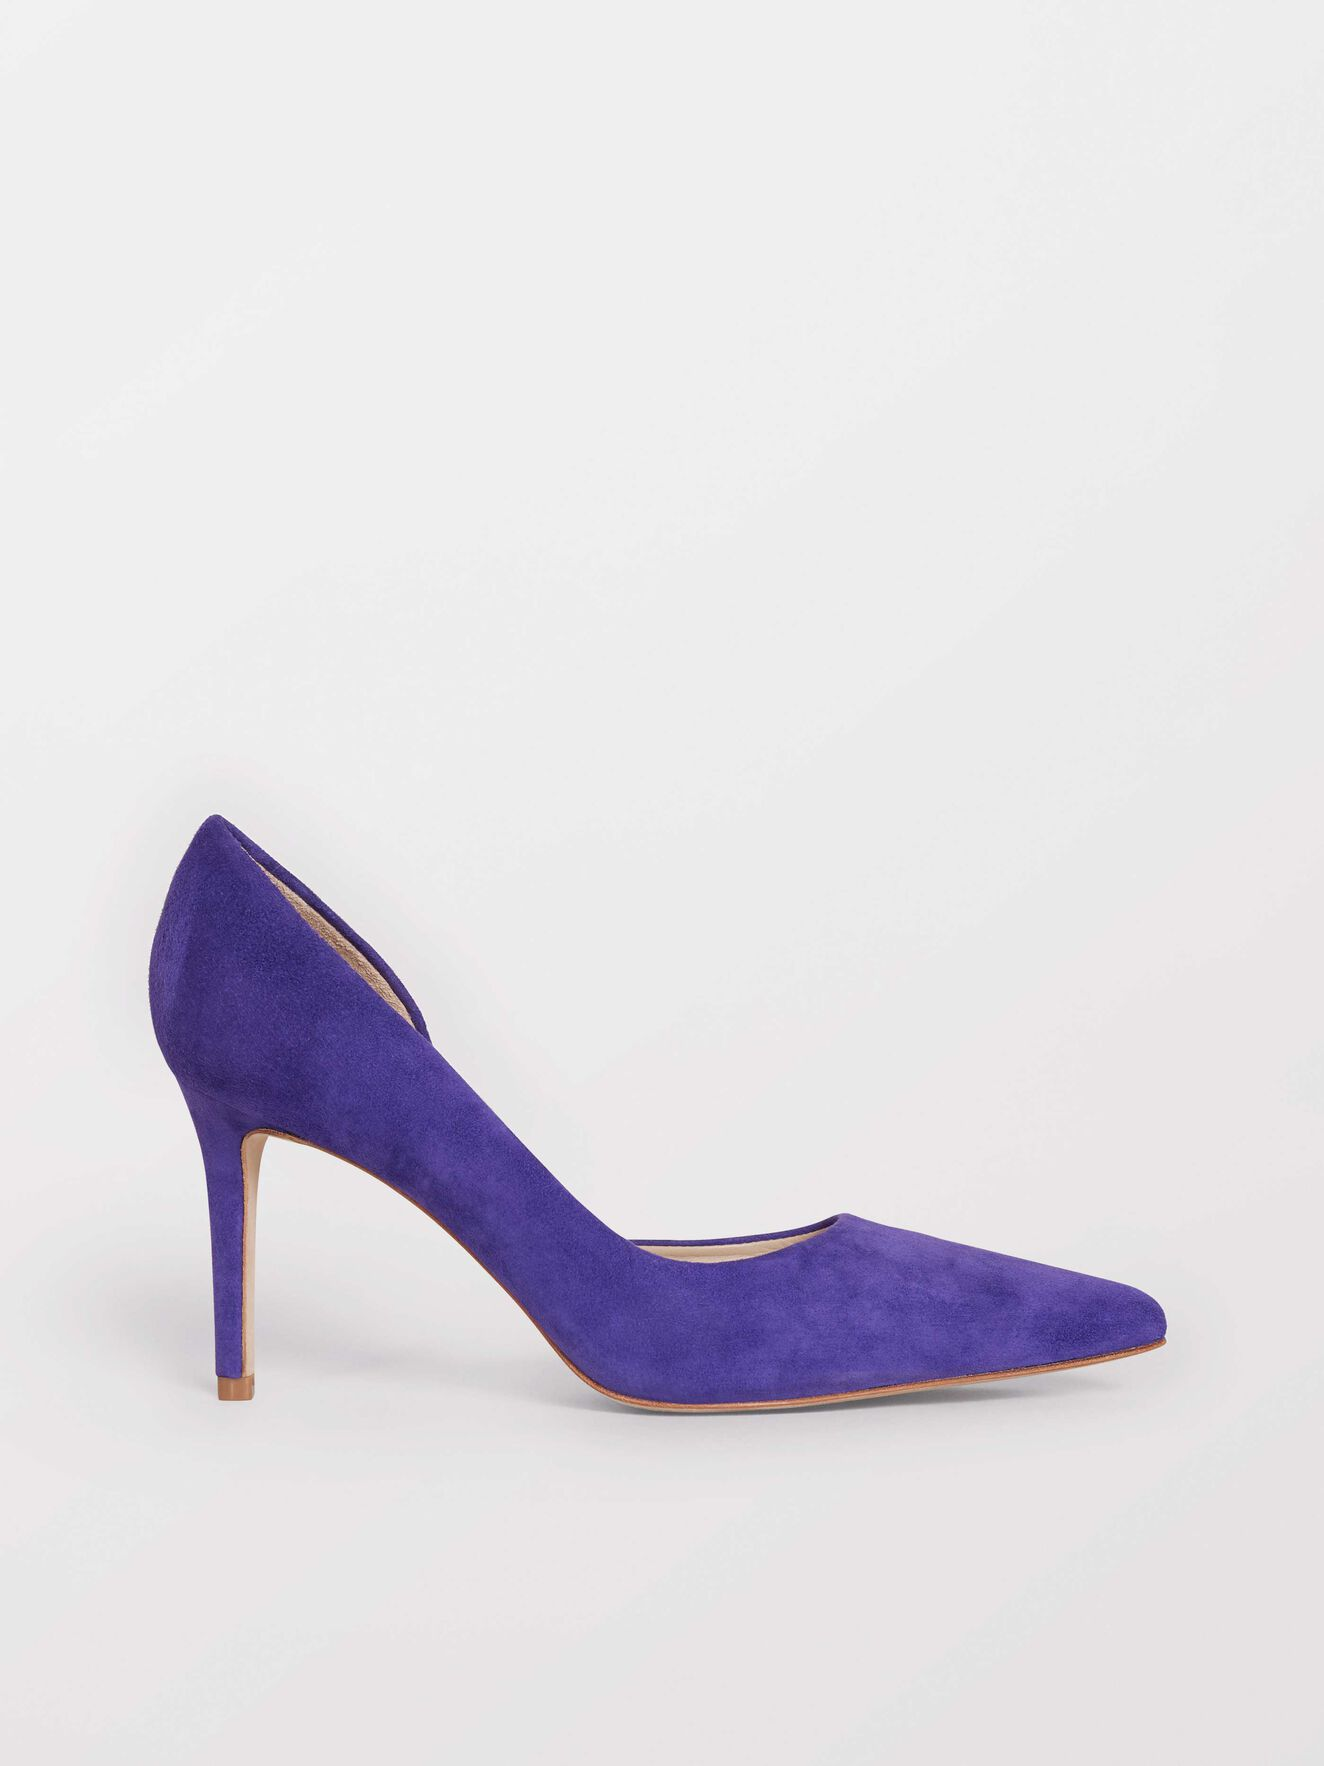 Xeroli Pumps in Hot Purple from Tiger of Sweden